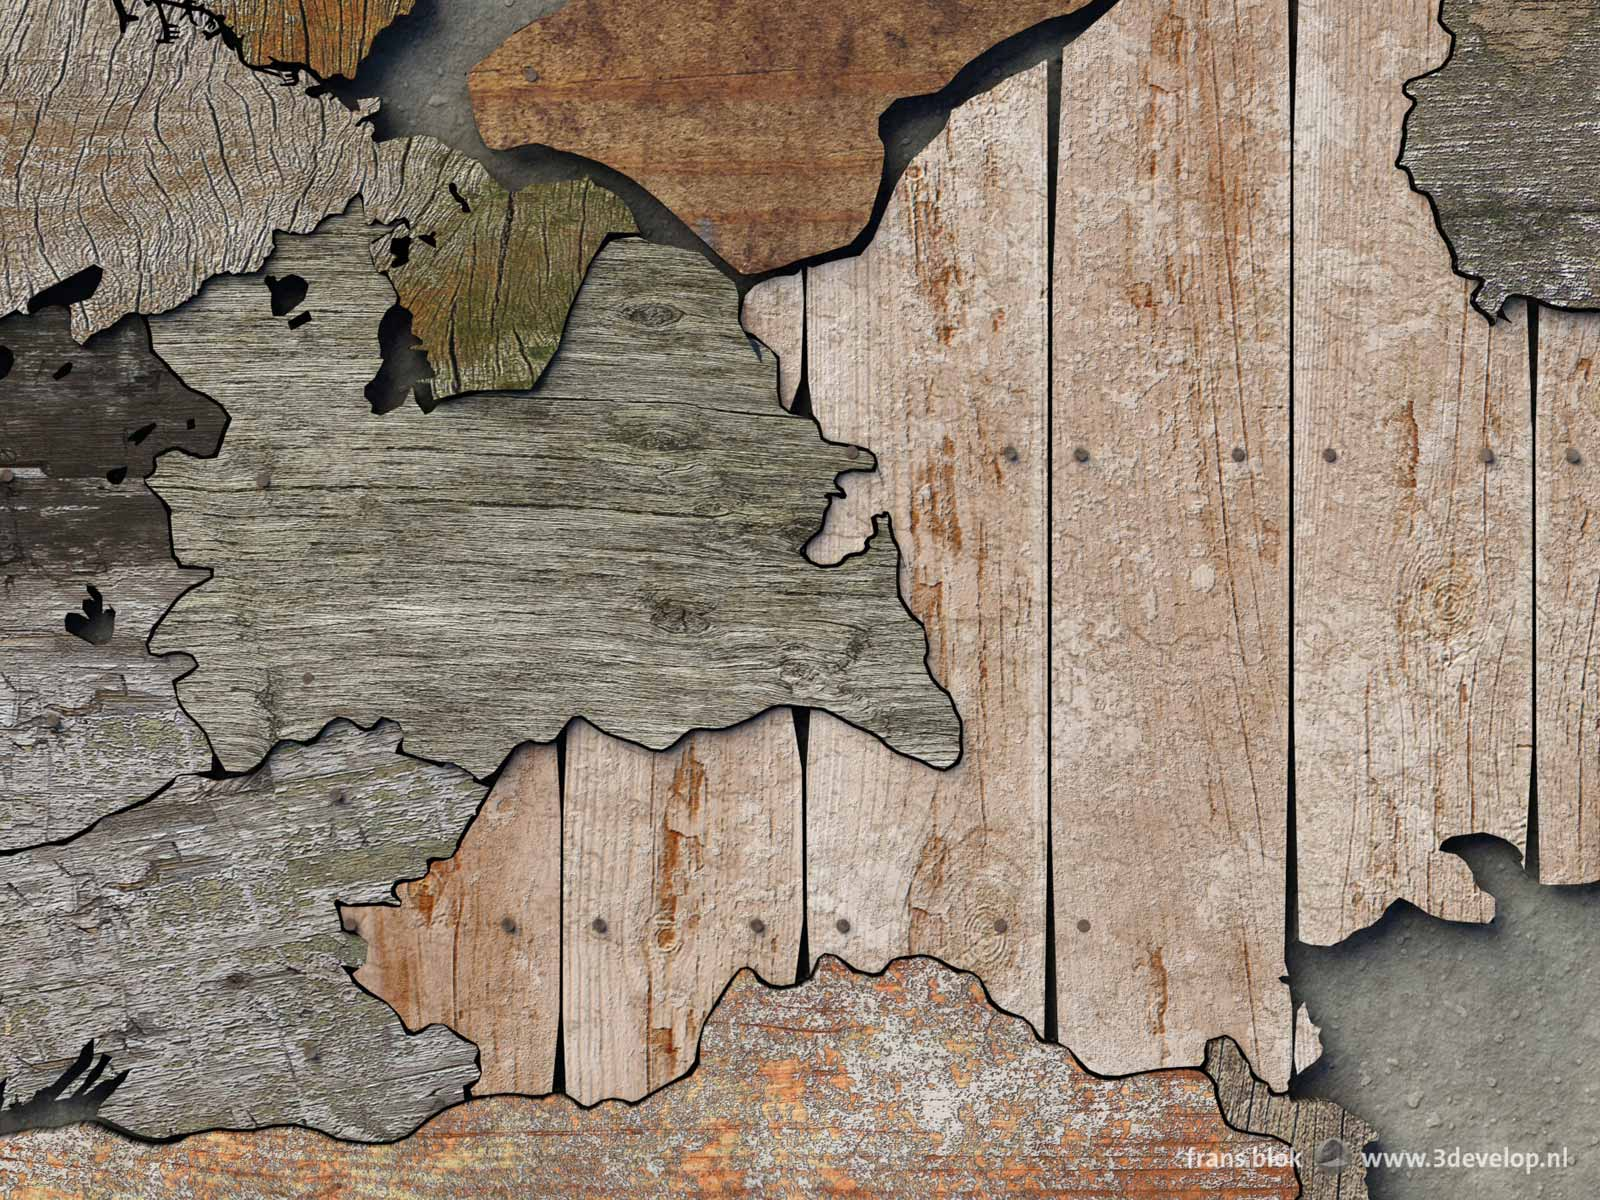 Detail of a map of the provinces of the Netherlands made of digital scrapwood, including Gelderland, Utrecht and surrounding areas